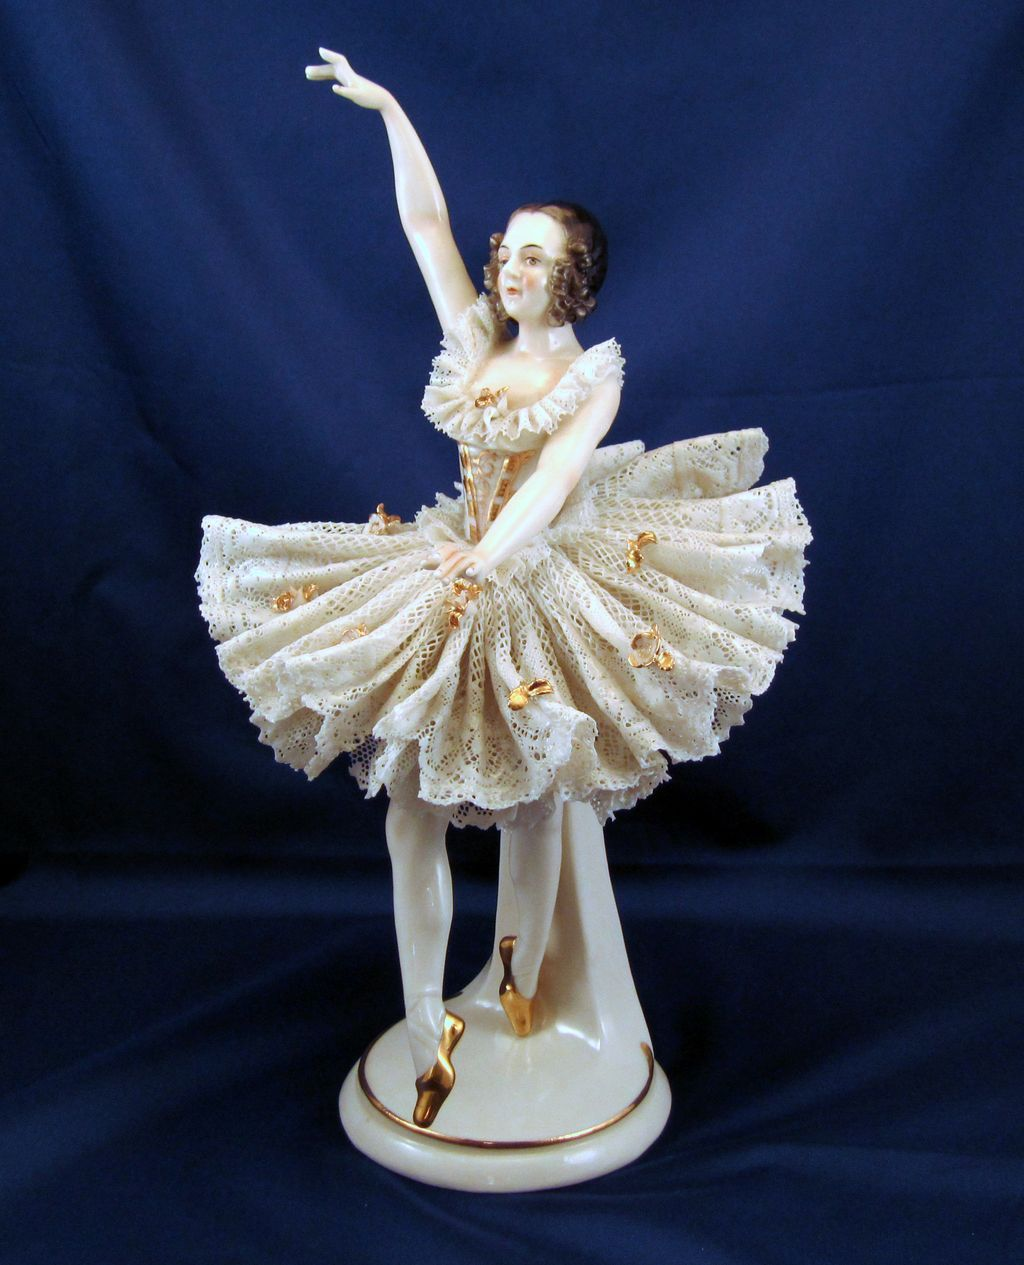 Dresden lace ballerina figurine in a graceful pirouette